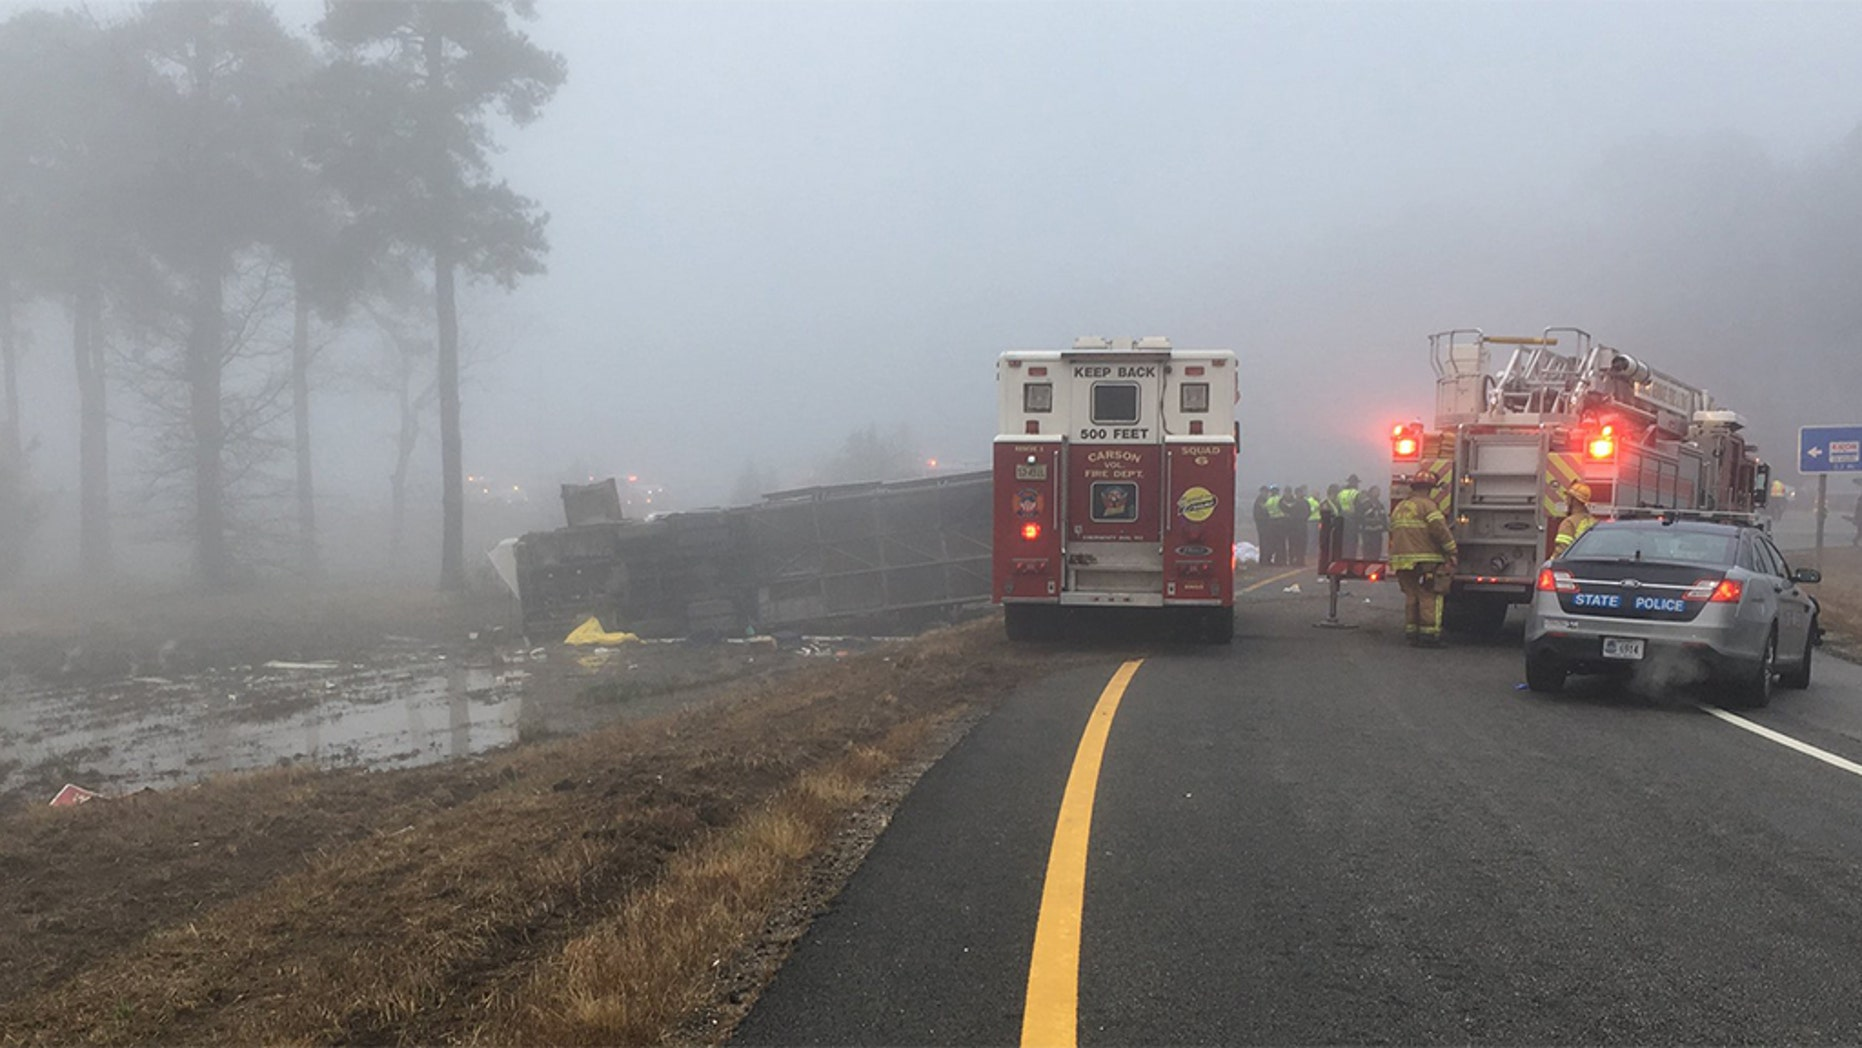 Virginia State Police said Yui Man Chow, a 40-year-old Staten Island resident, was driving a Toa's Travel bus through Prince George County, Va., on I-95 about 5:20 a.m. when the vehicle overturned at Exit 45.